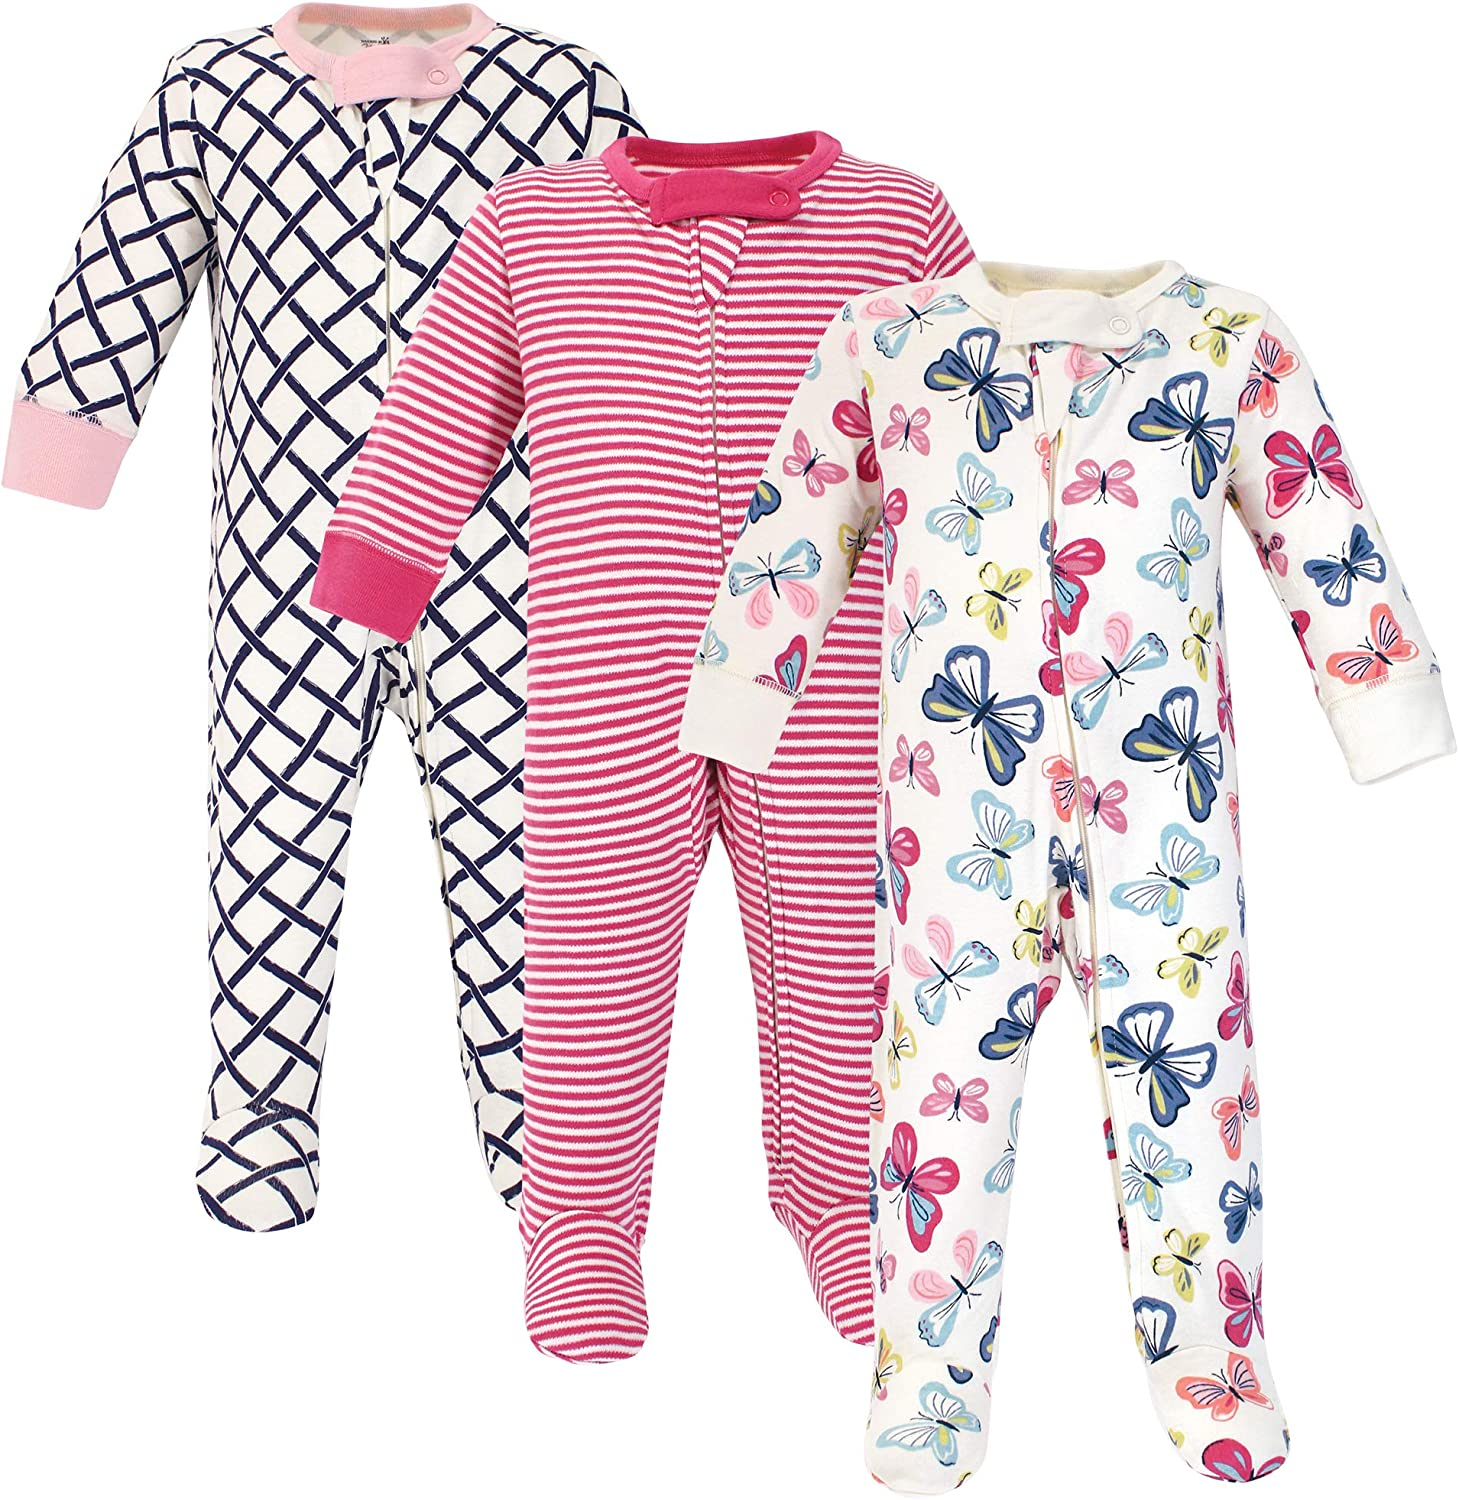 Touched by Nature Baby Organic Cotton Sleep and Play Sleepers